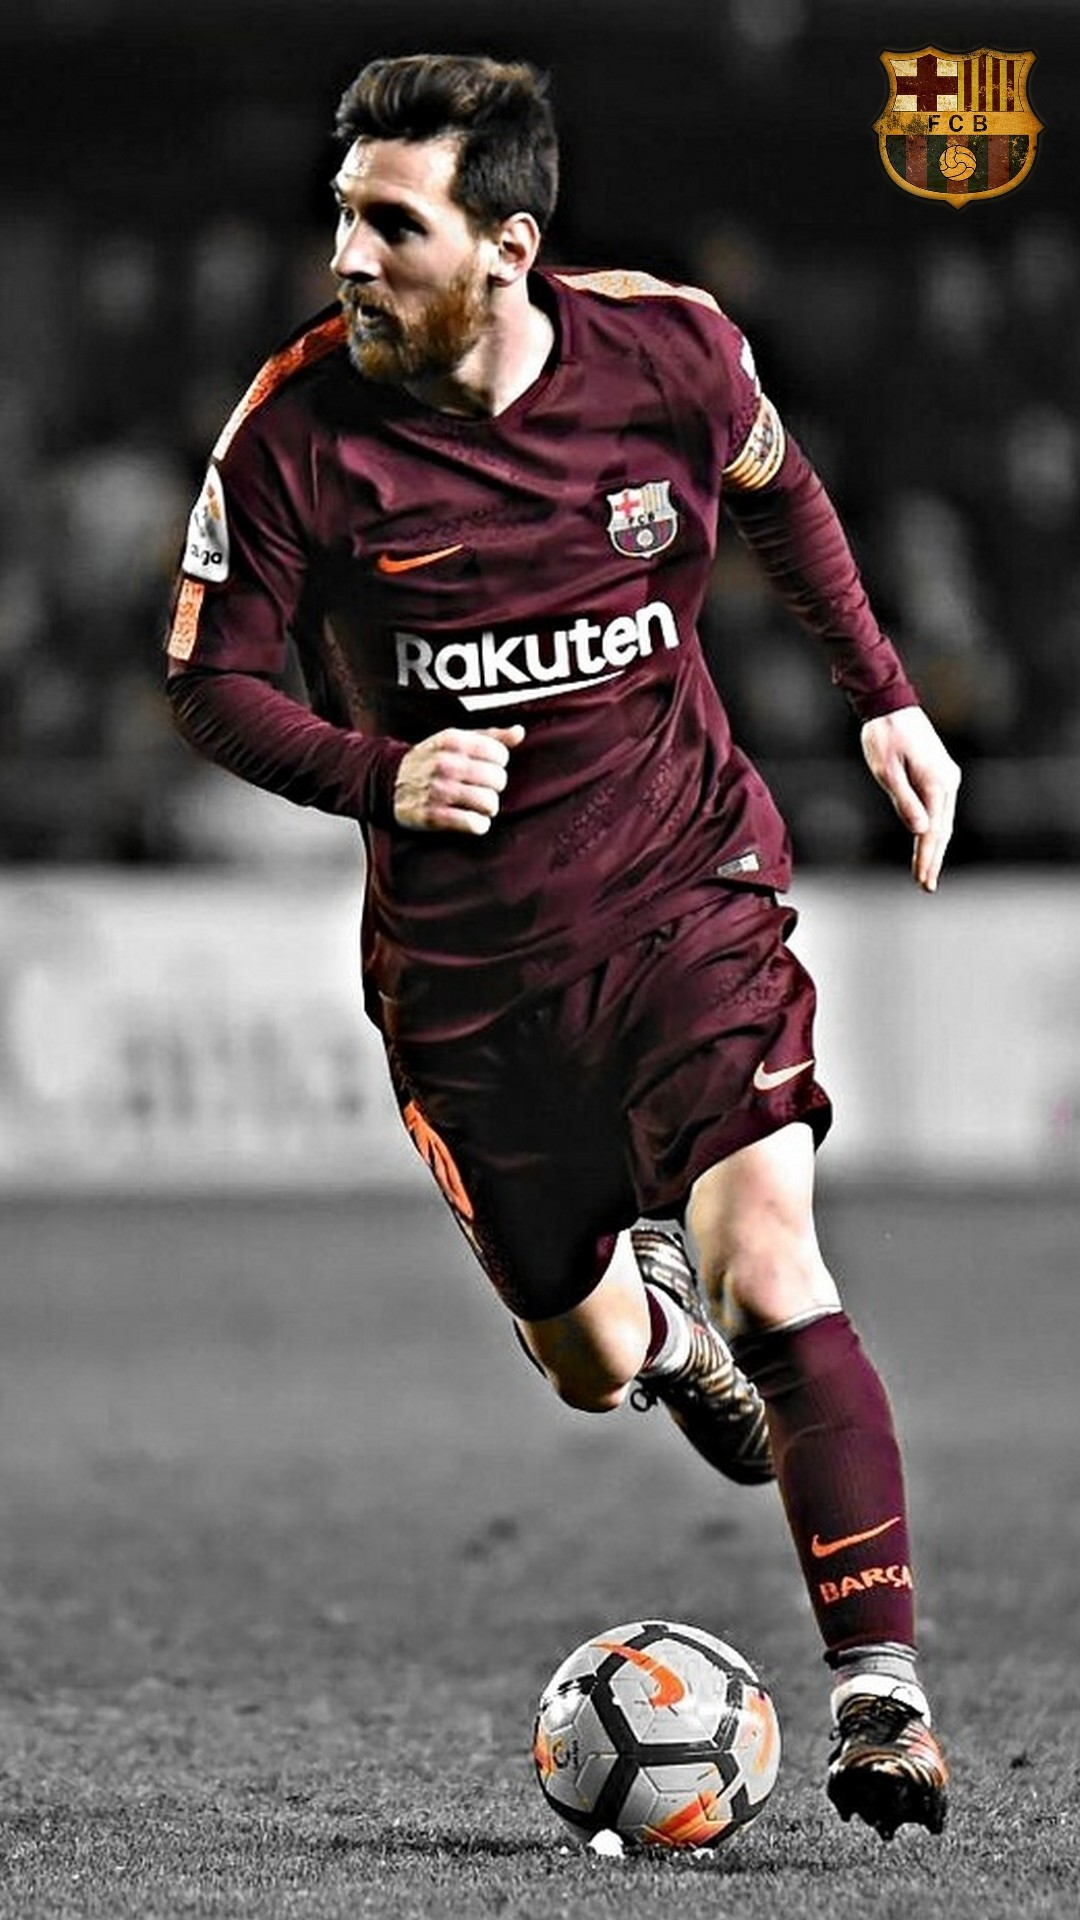 iPhone Wallpaper HD Messi with resolution 1080x1920 pixel. You can make this wallpaper for your Mac or Windows Desktop Background, iPhone, Android or Tablet and another Smartphone device